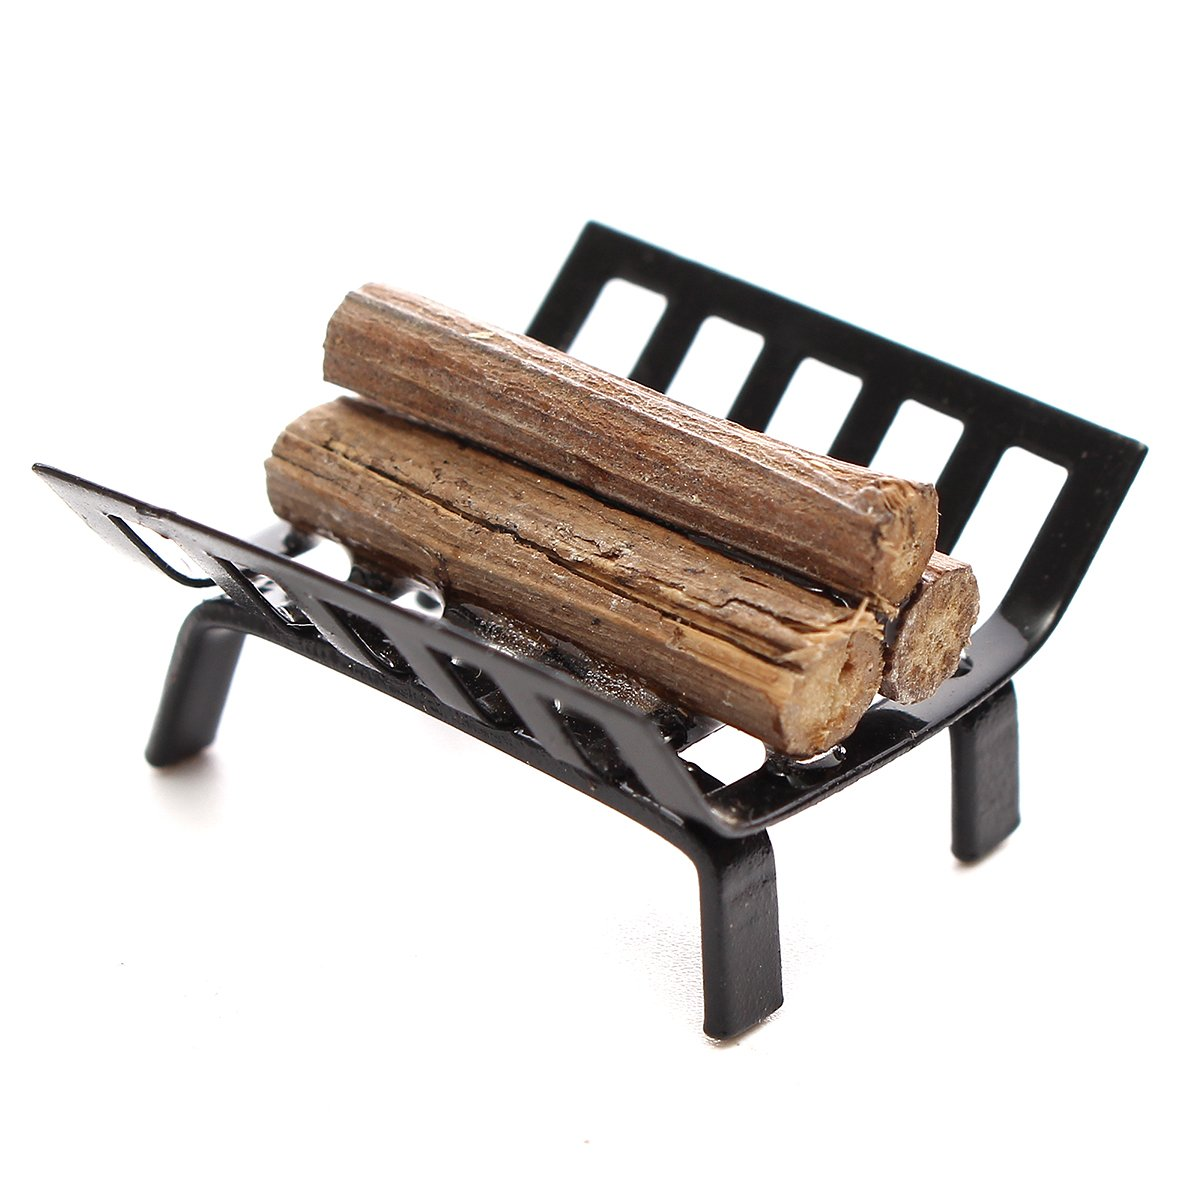 BangBang NEW Firewood Dollhouse Miniature Kitchen Furniture Accessories For Home Decor